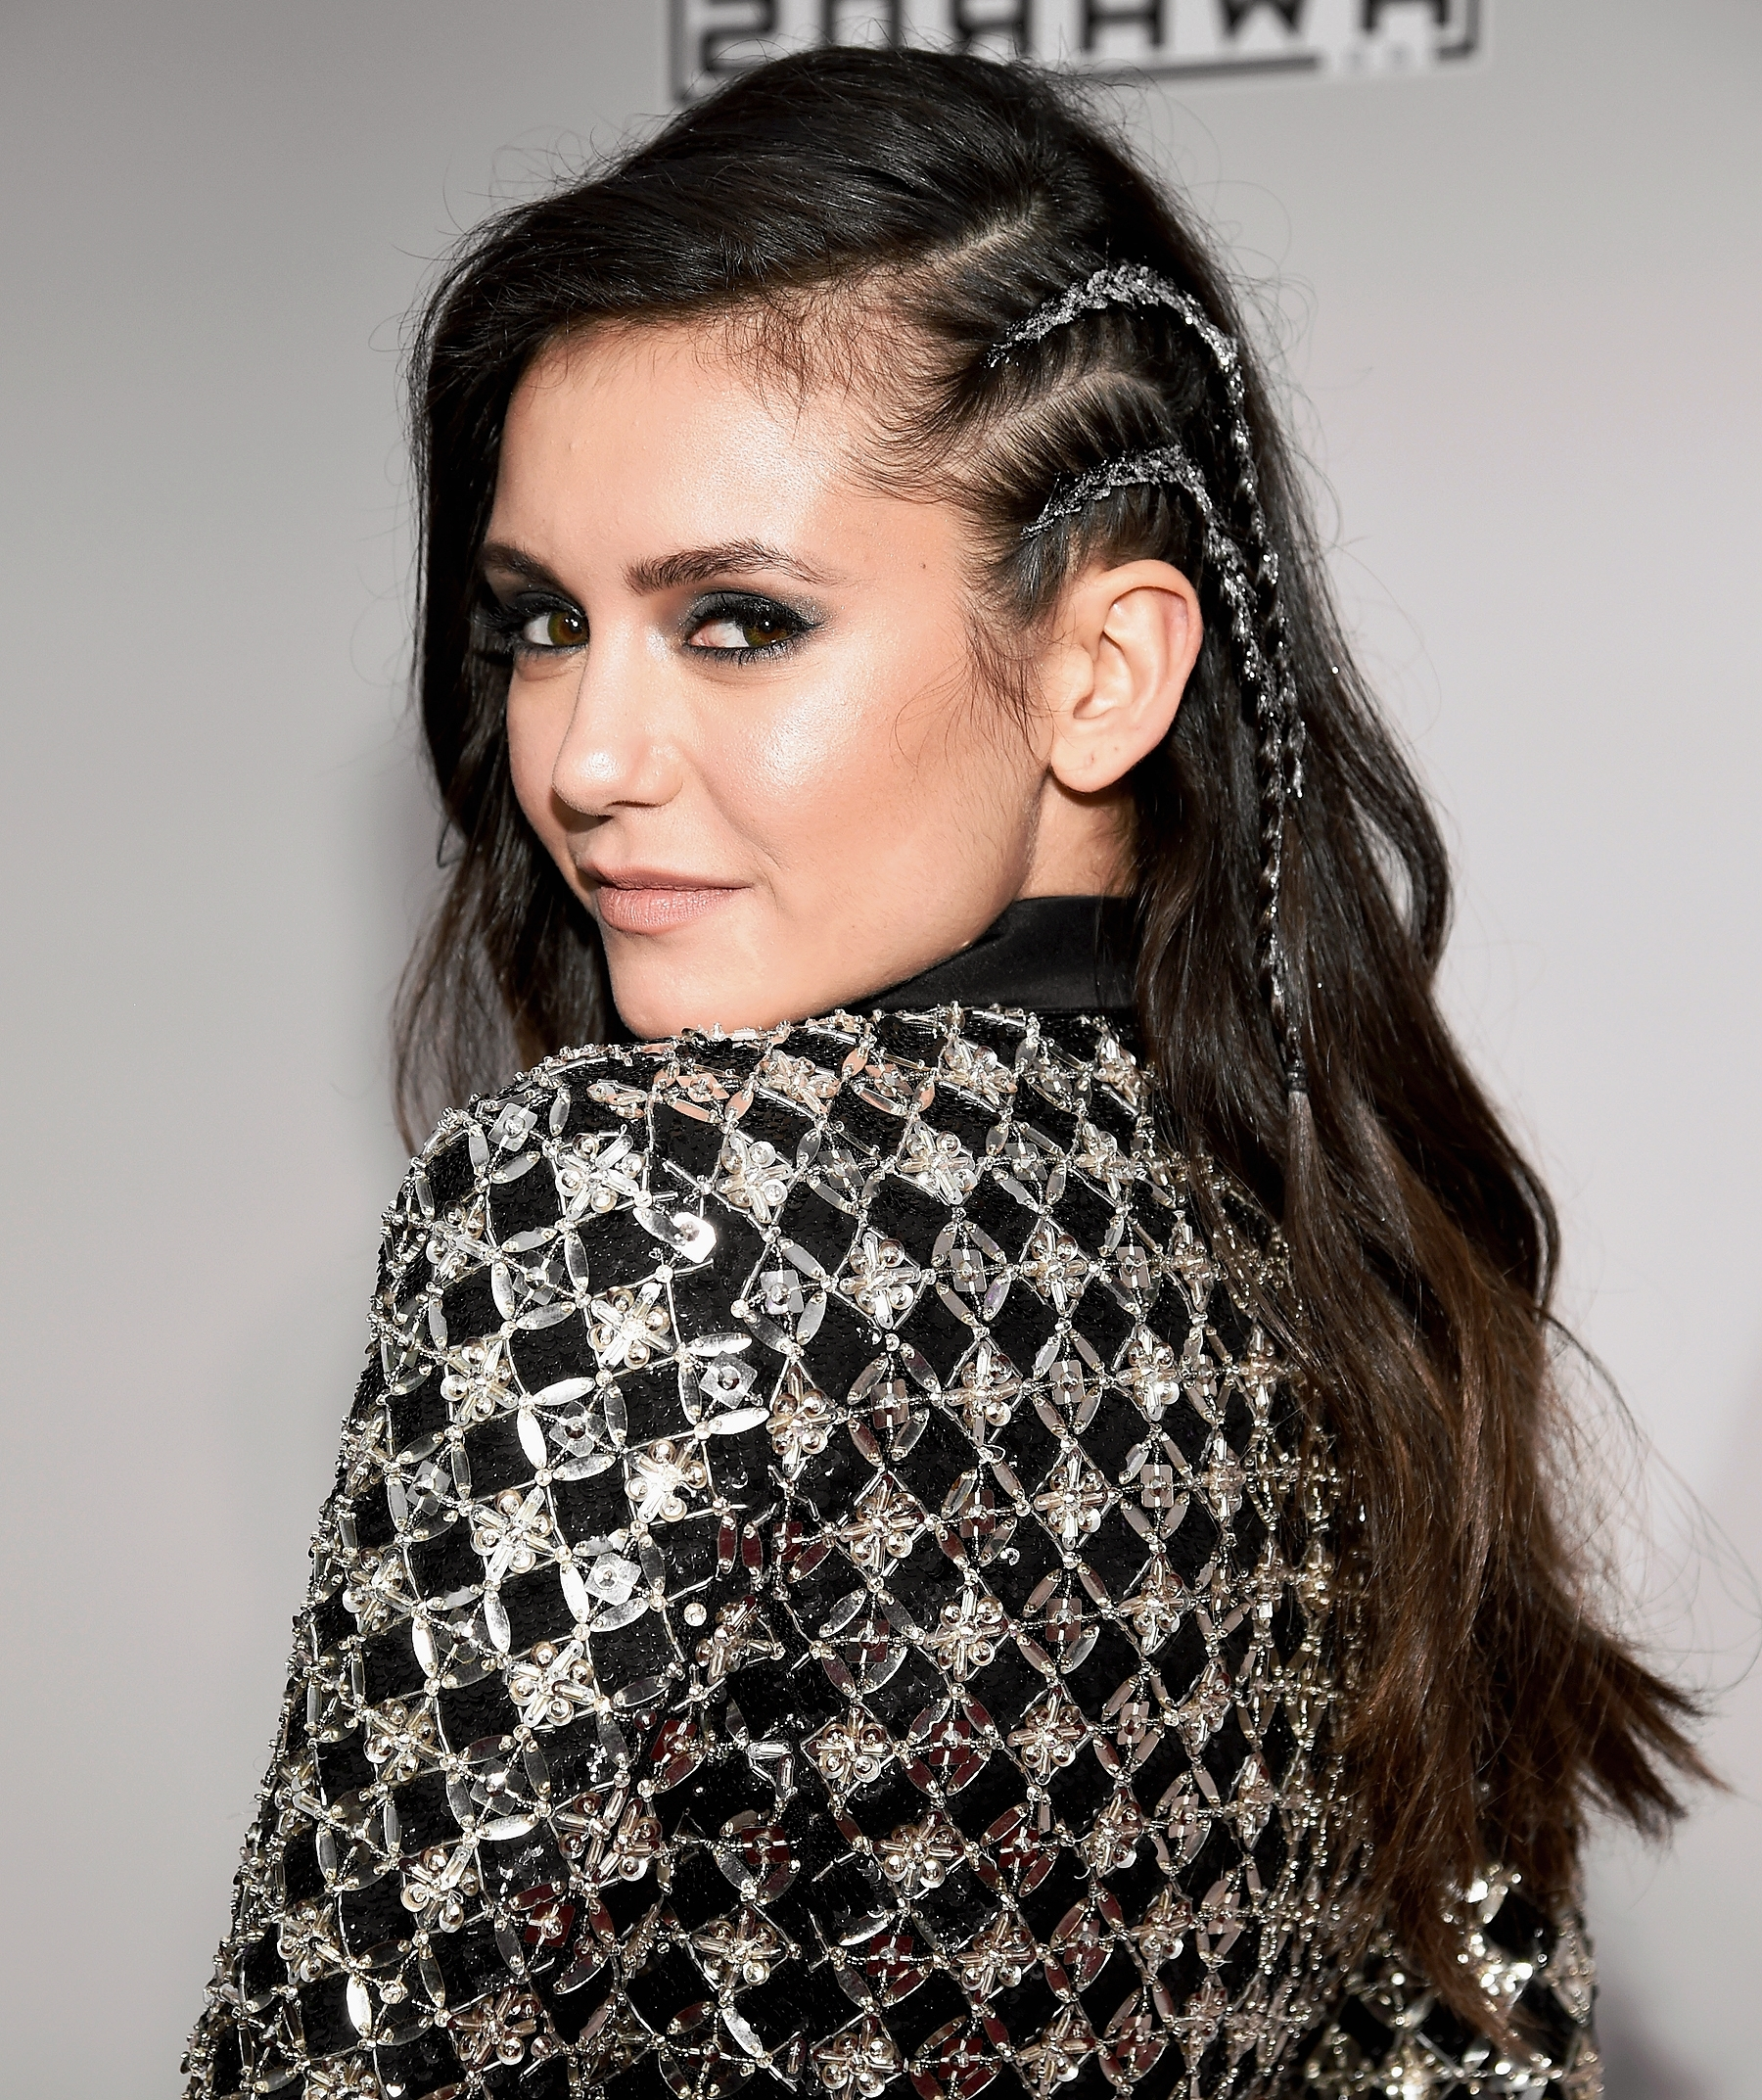 Bring On The Braids! The Hot Right Now Hairstyle That's All Over Intended For Trendy Cornrows One Side Hairstyles (View 6 of 15)